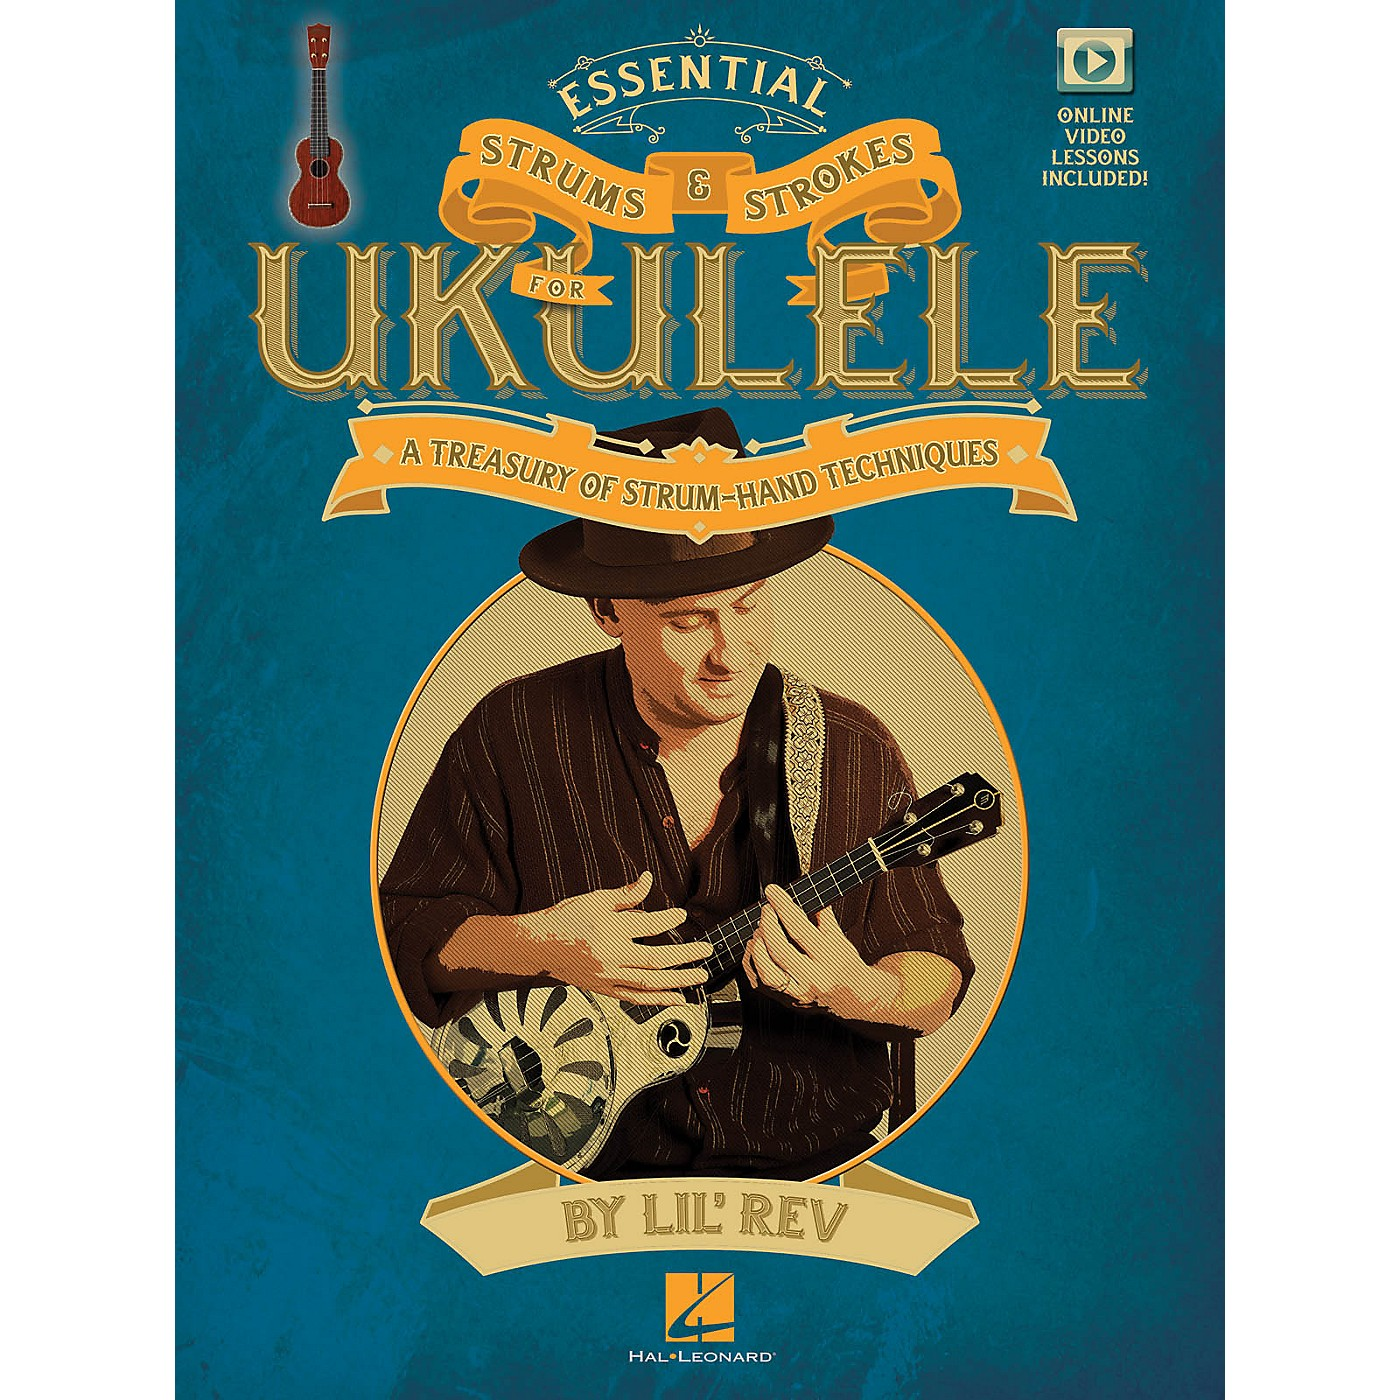 Hal Leonard Essential Strums & Strokes for Ukulele Ukulele Series Softcover Video Online Written by Lil' Rev thumbnail